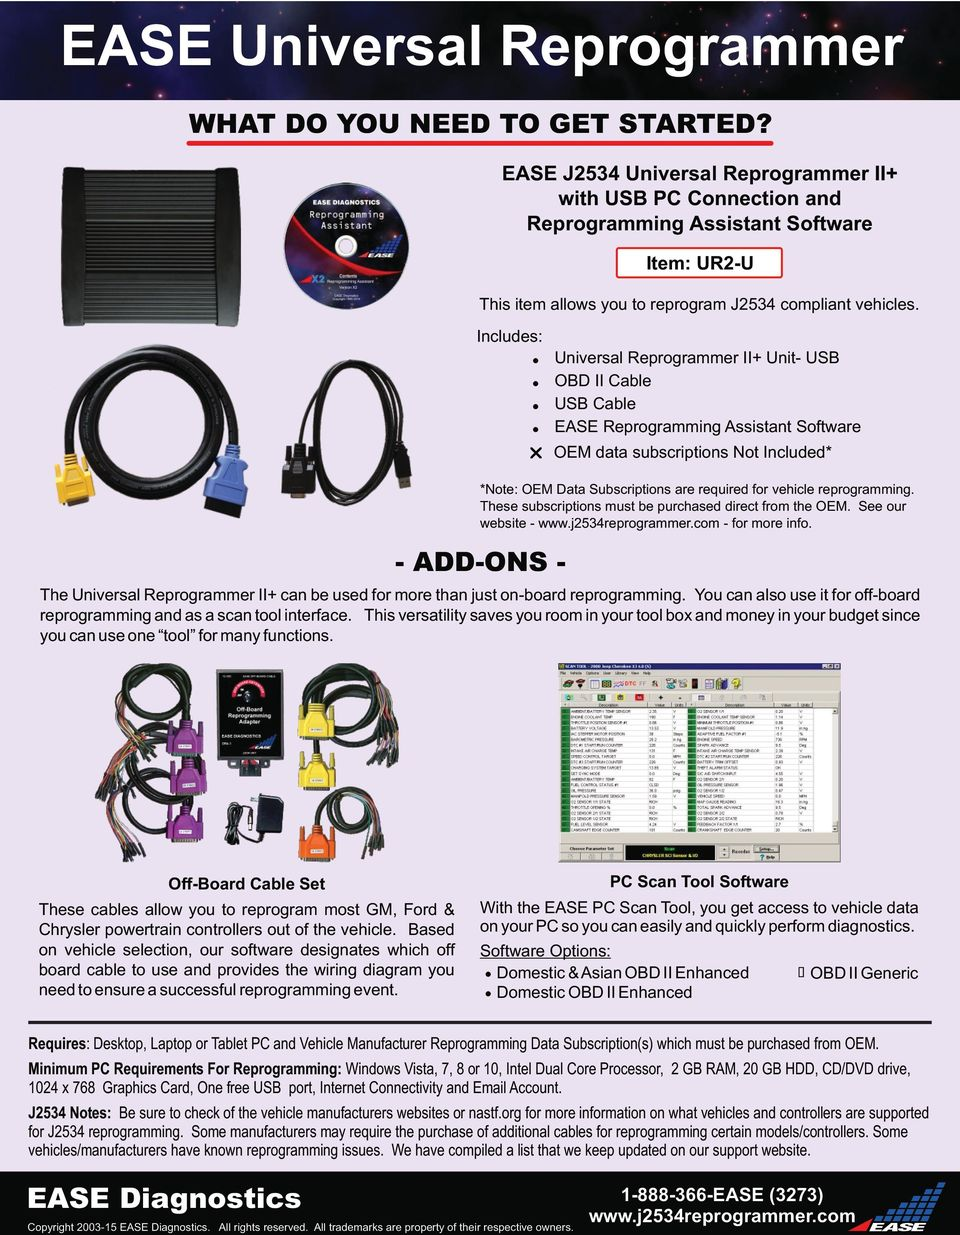 - ADD-ONS - EASE J2534 Universal Reprogrammer II+ with USB PC Connection and Reprogramming Assistant Software Includes:! Universal Reprogrammer II+ Unit- USB! OBD II Cable! USB Cable!